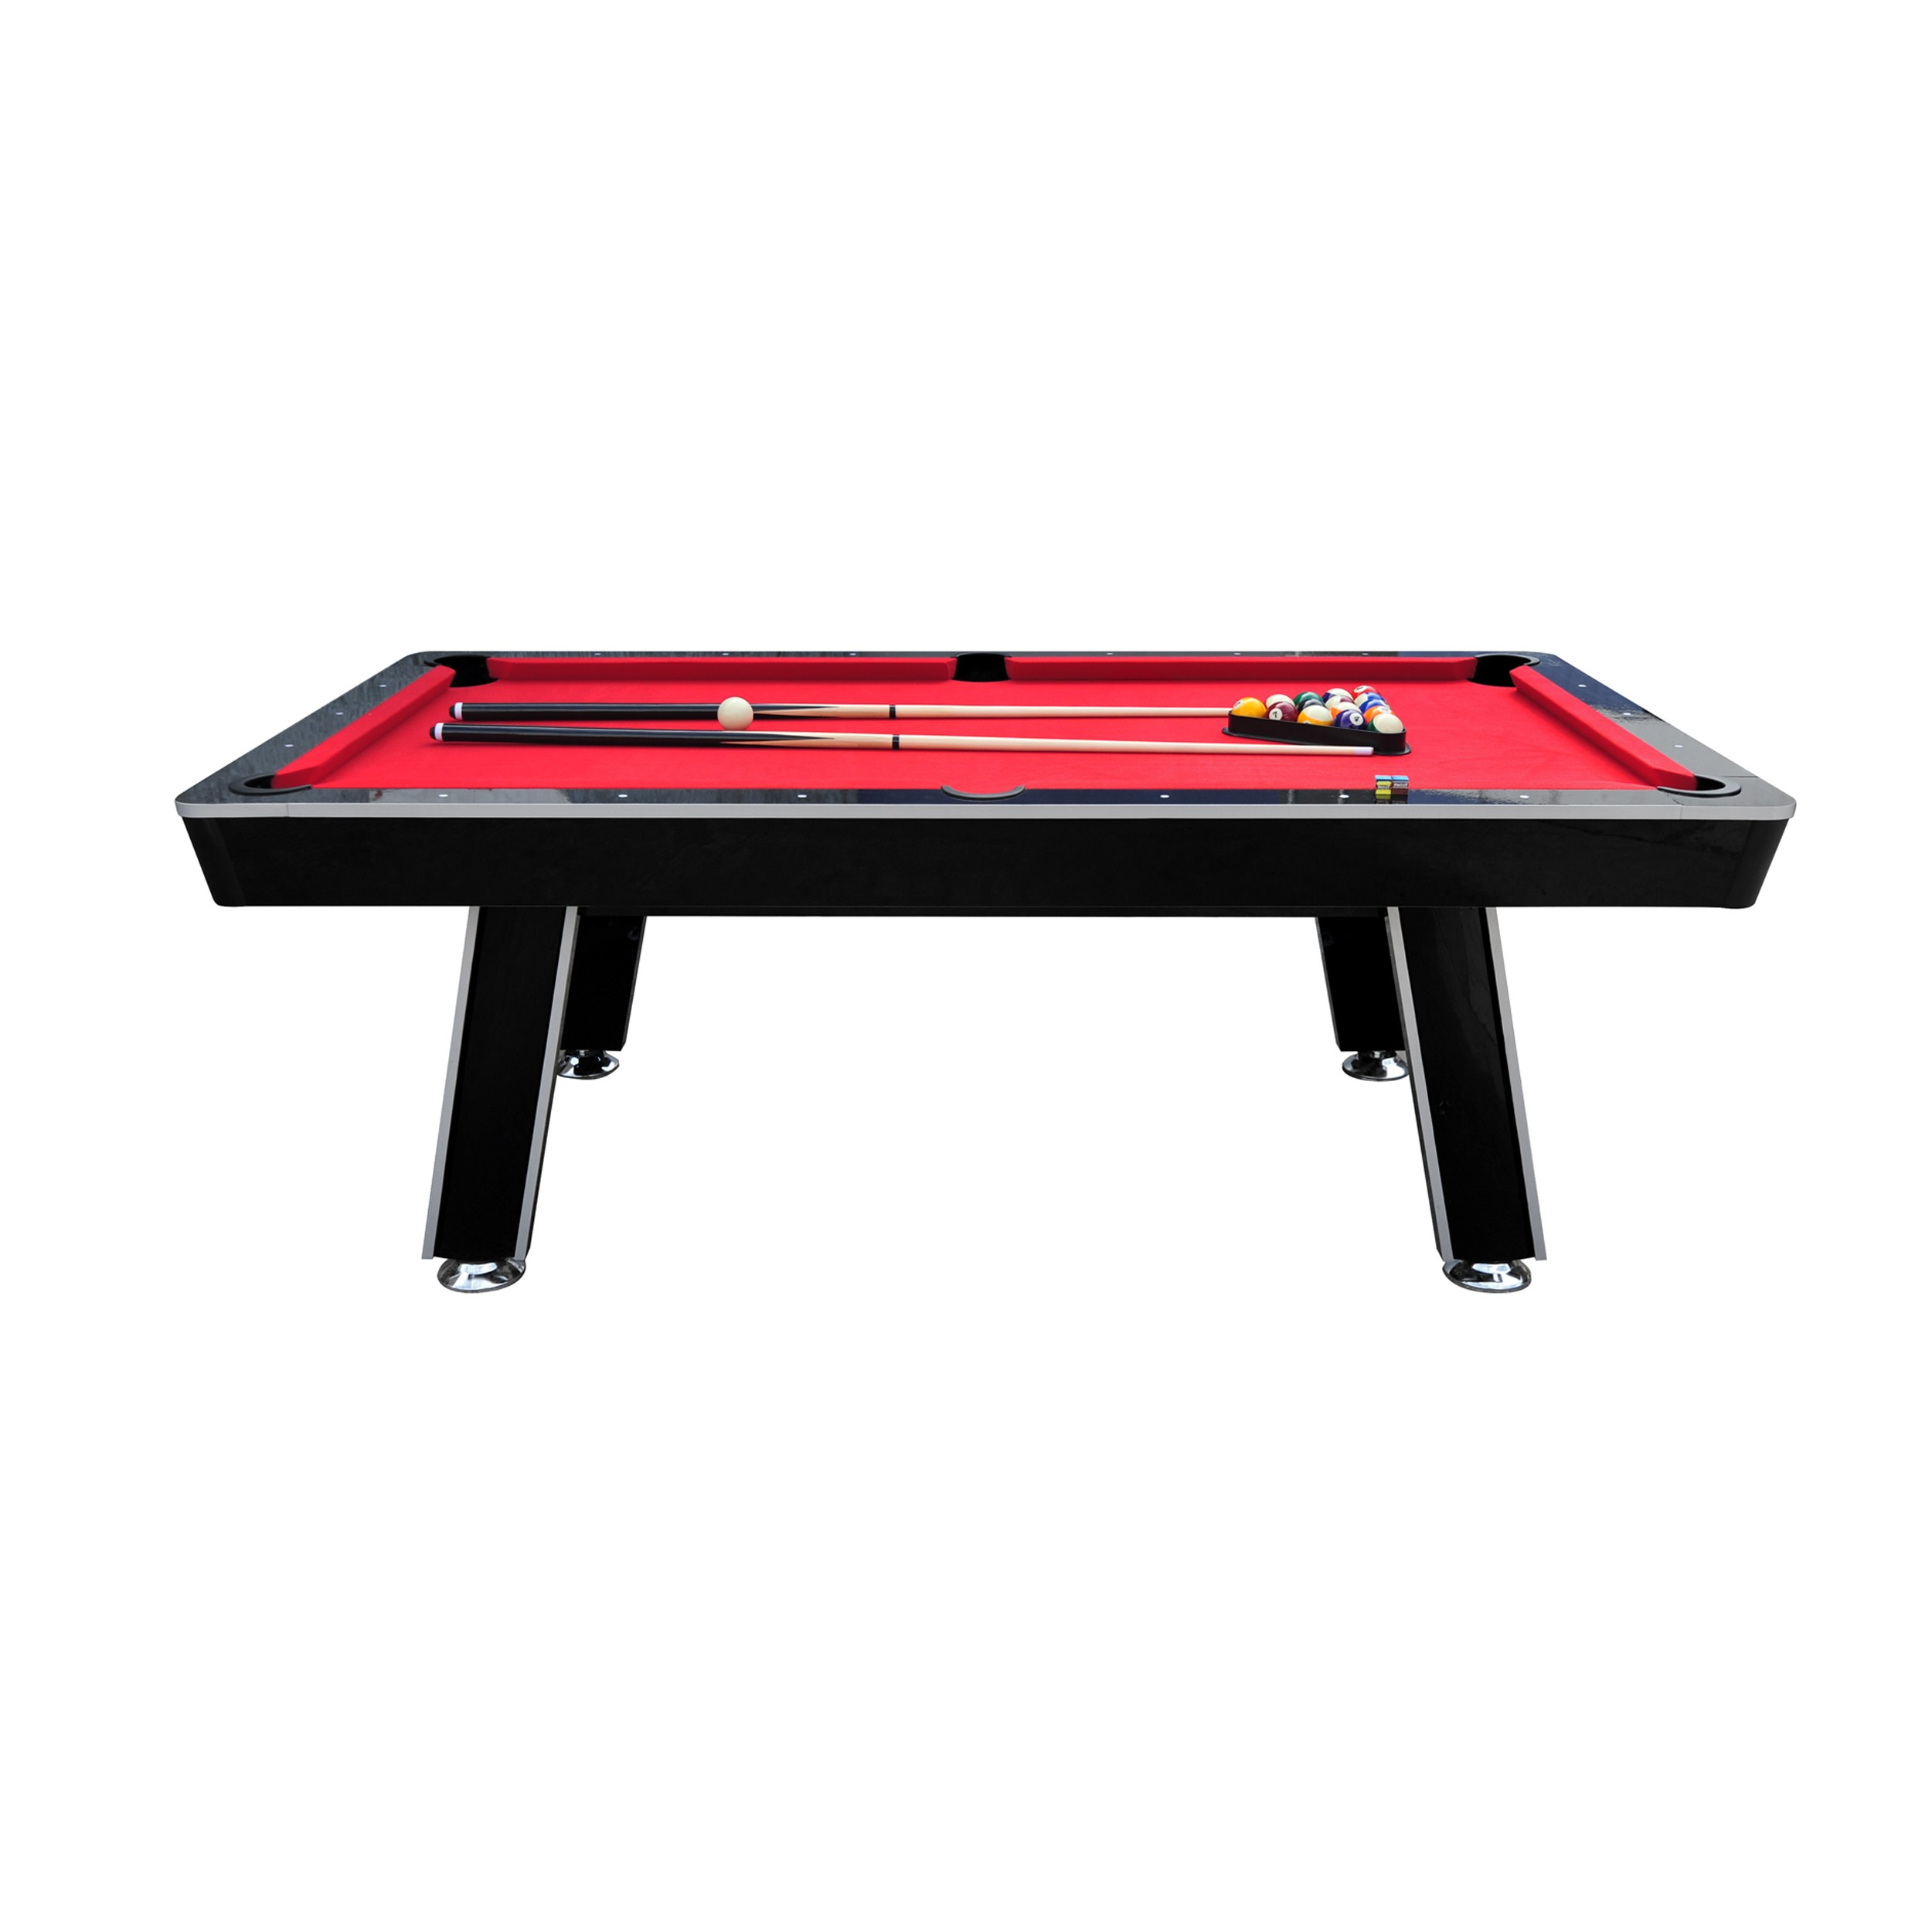 billard milton 7ft noir tapis rouge adoptez nos billards milton 7ft noirs tapis rouge rdv d co. Black Bedroom Furniture Sets. Home Design Ideas